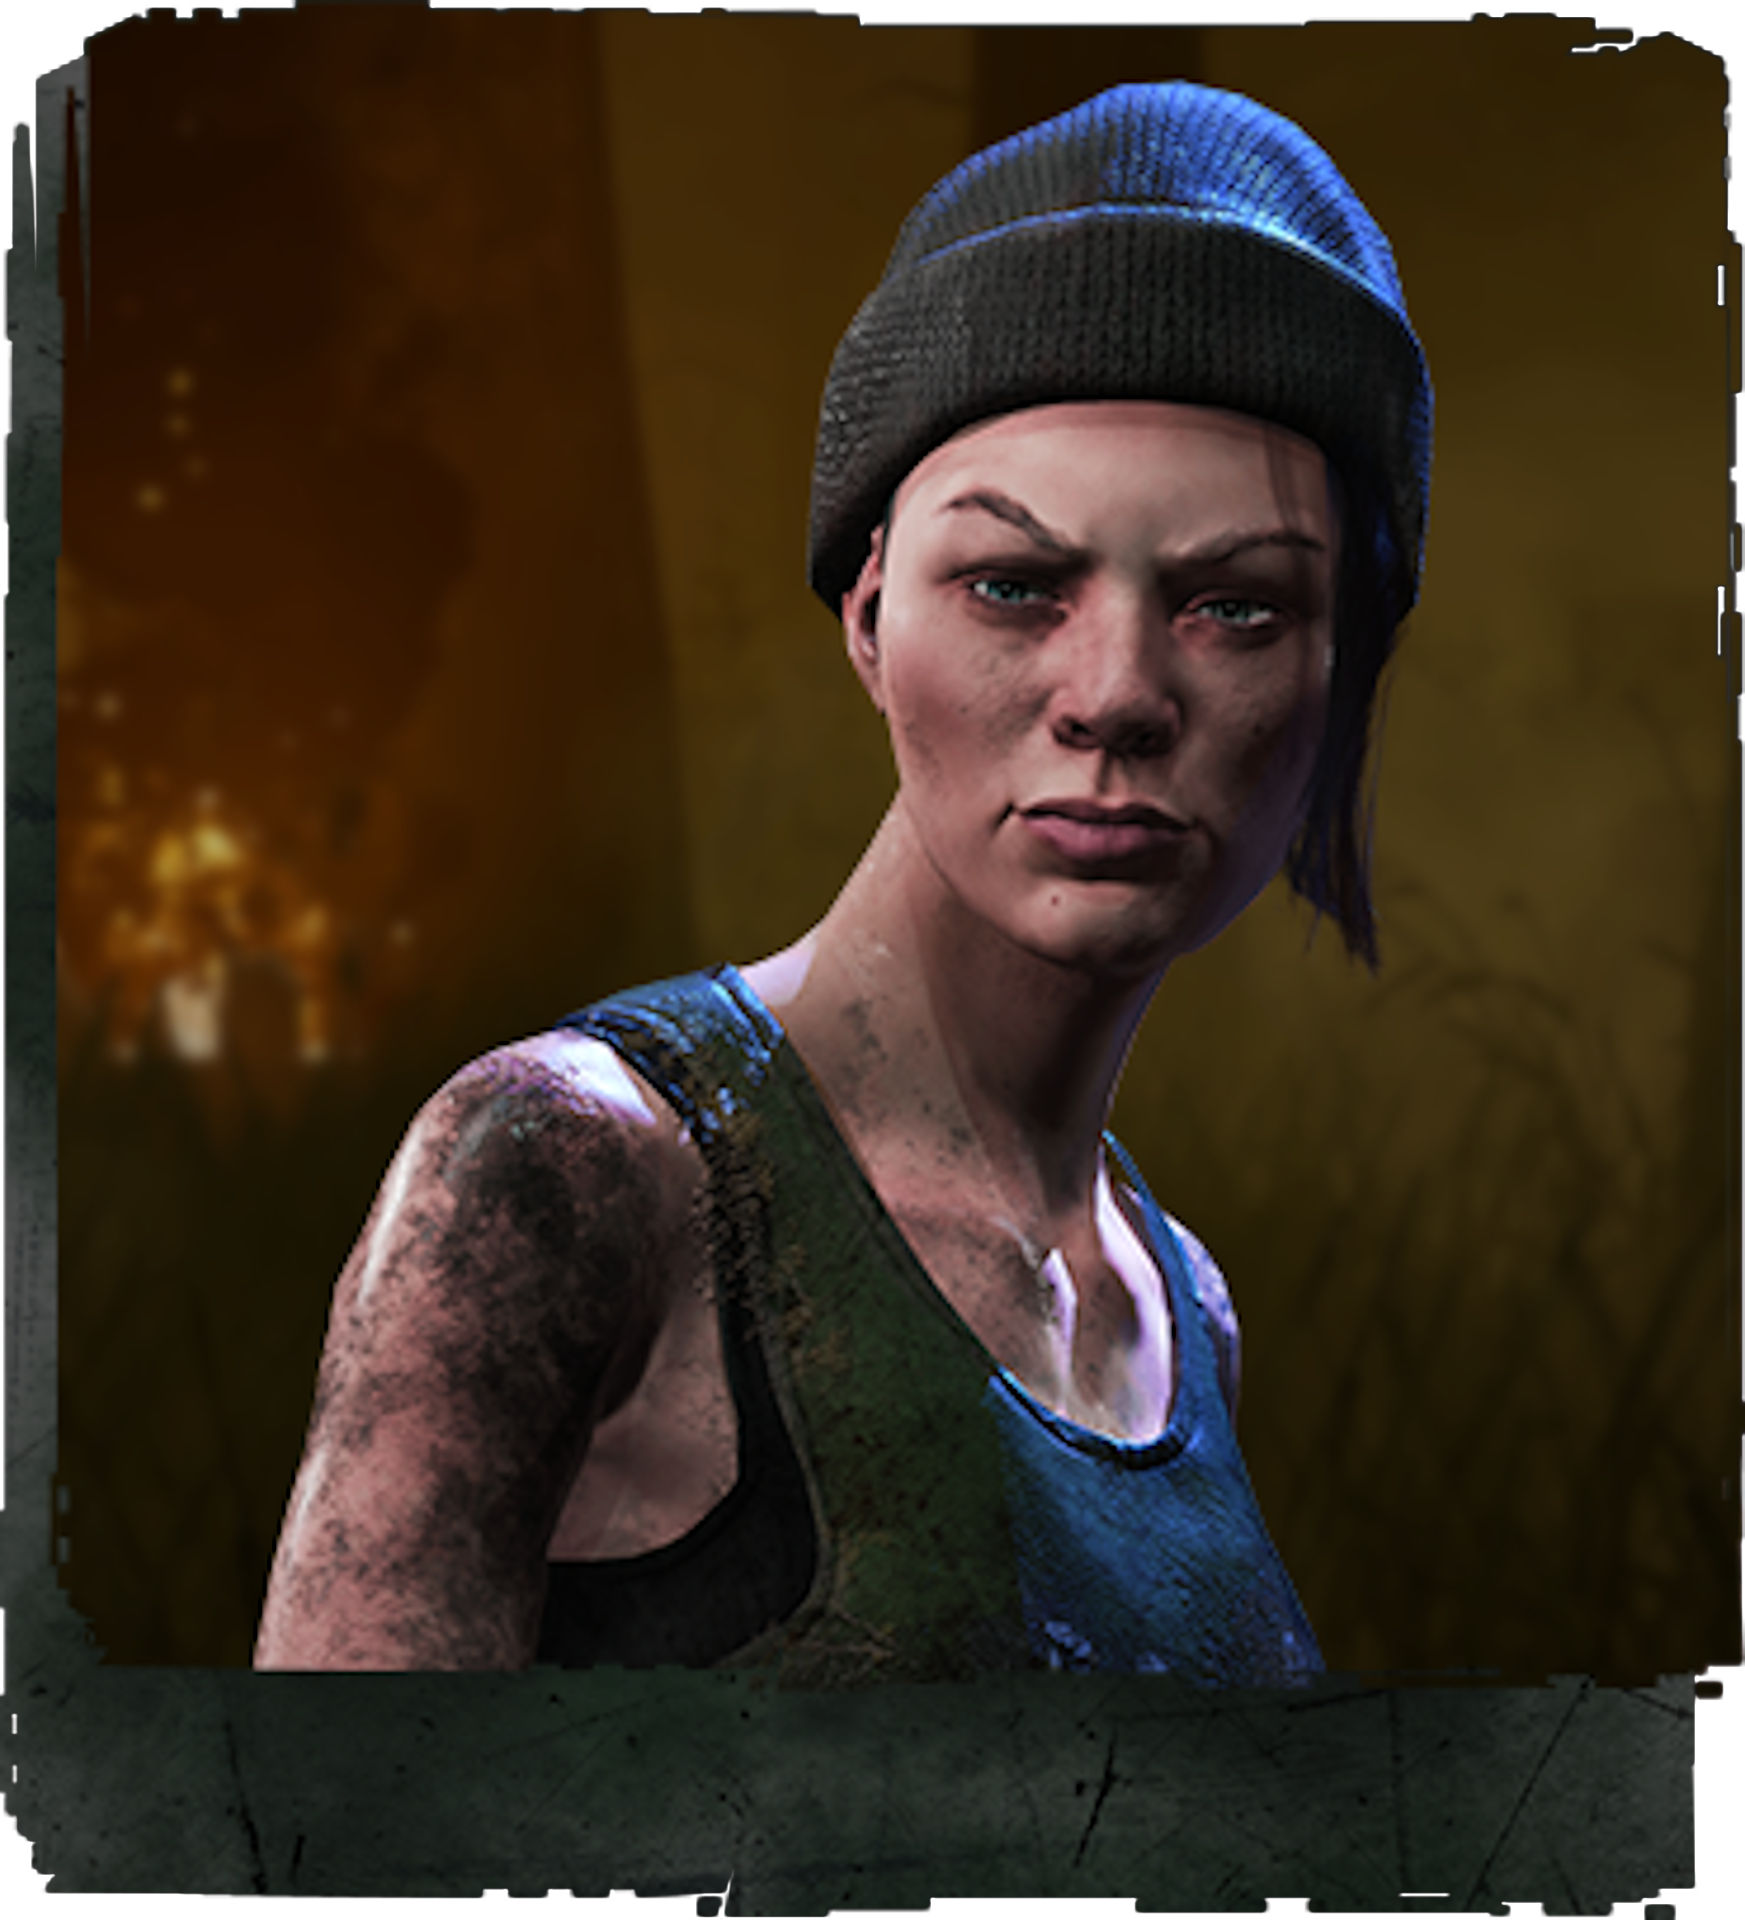 dead-by-daylight-mobile-nea.jpg